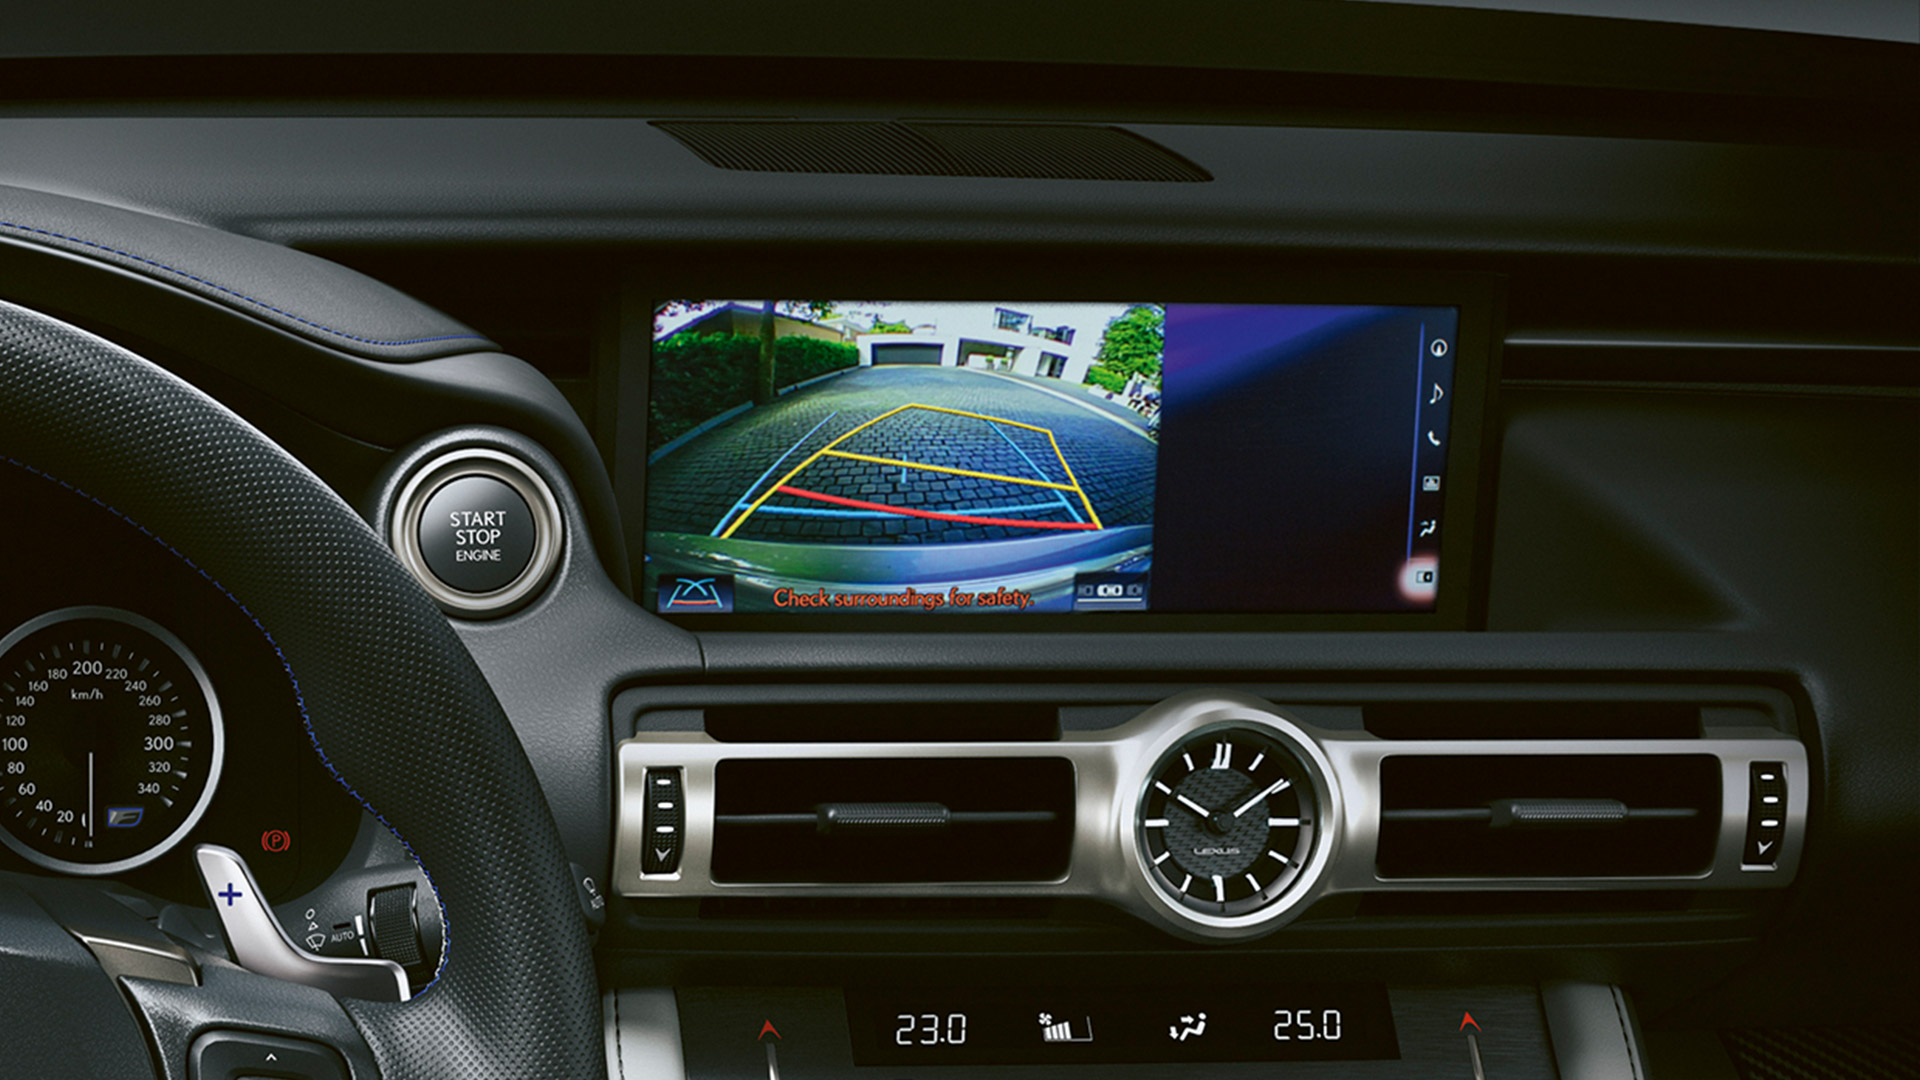 hotspot 1920x1080 15 interior front park assist